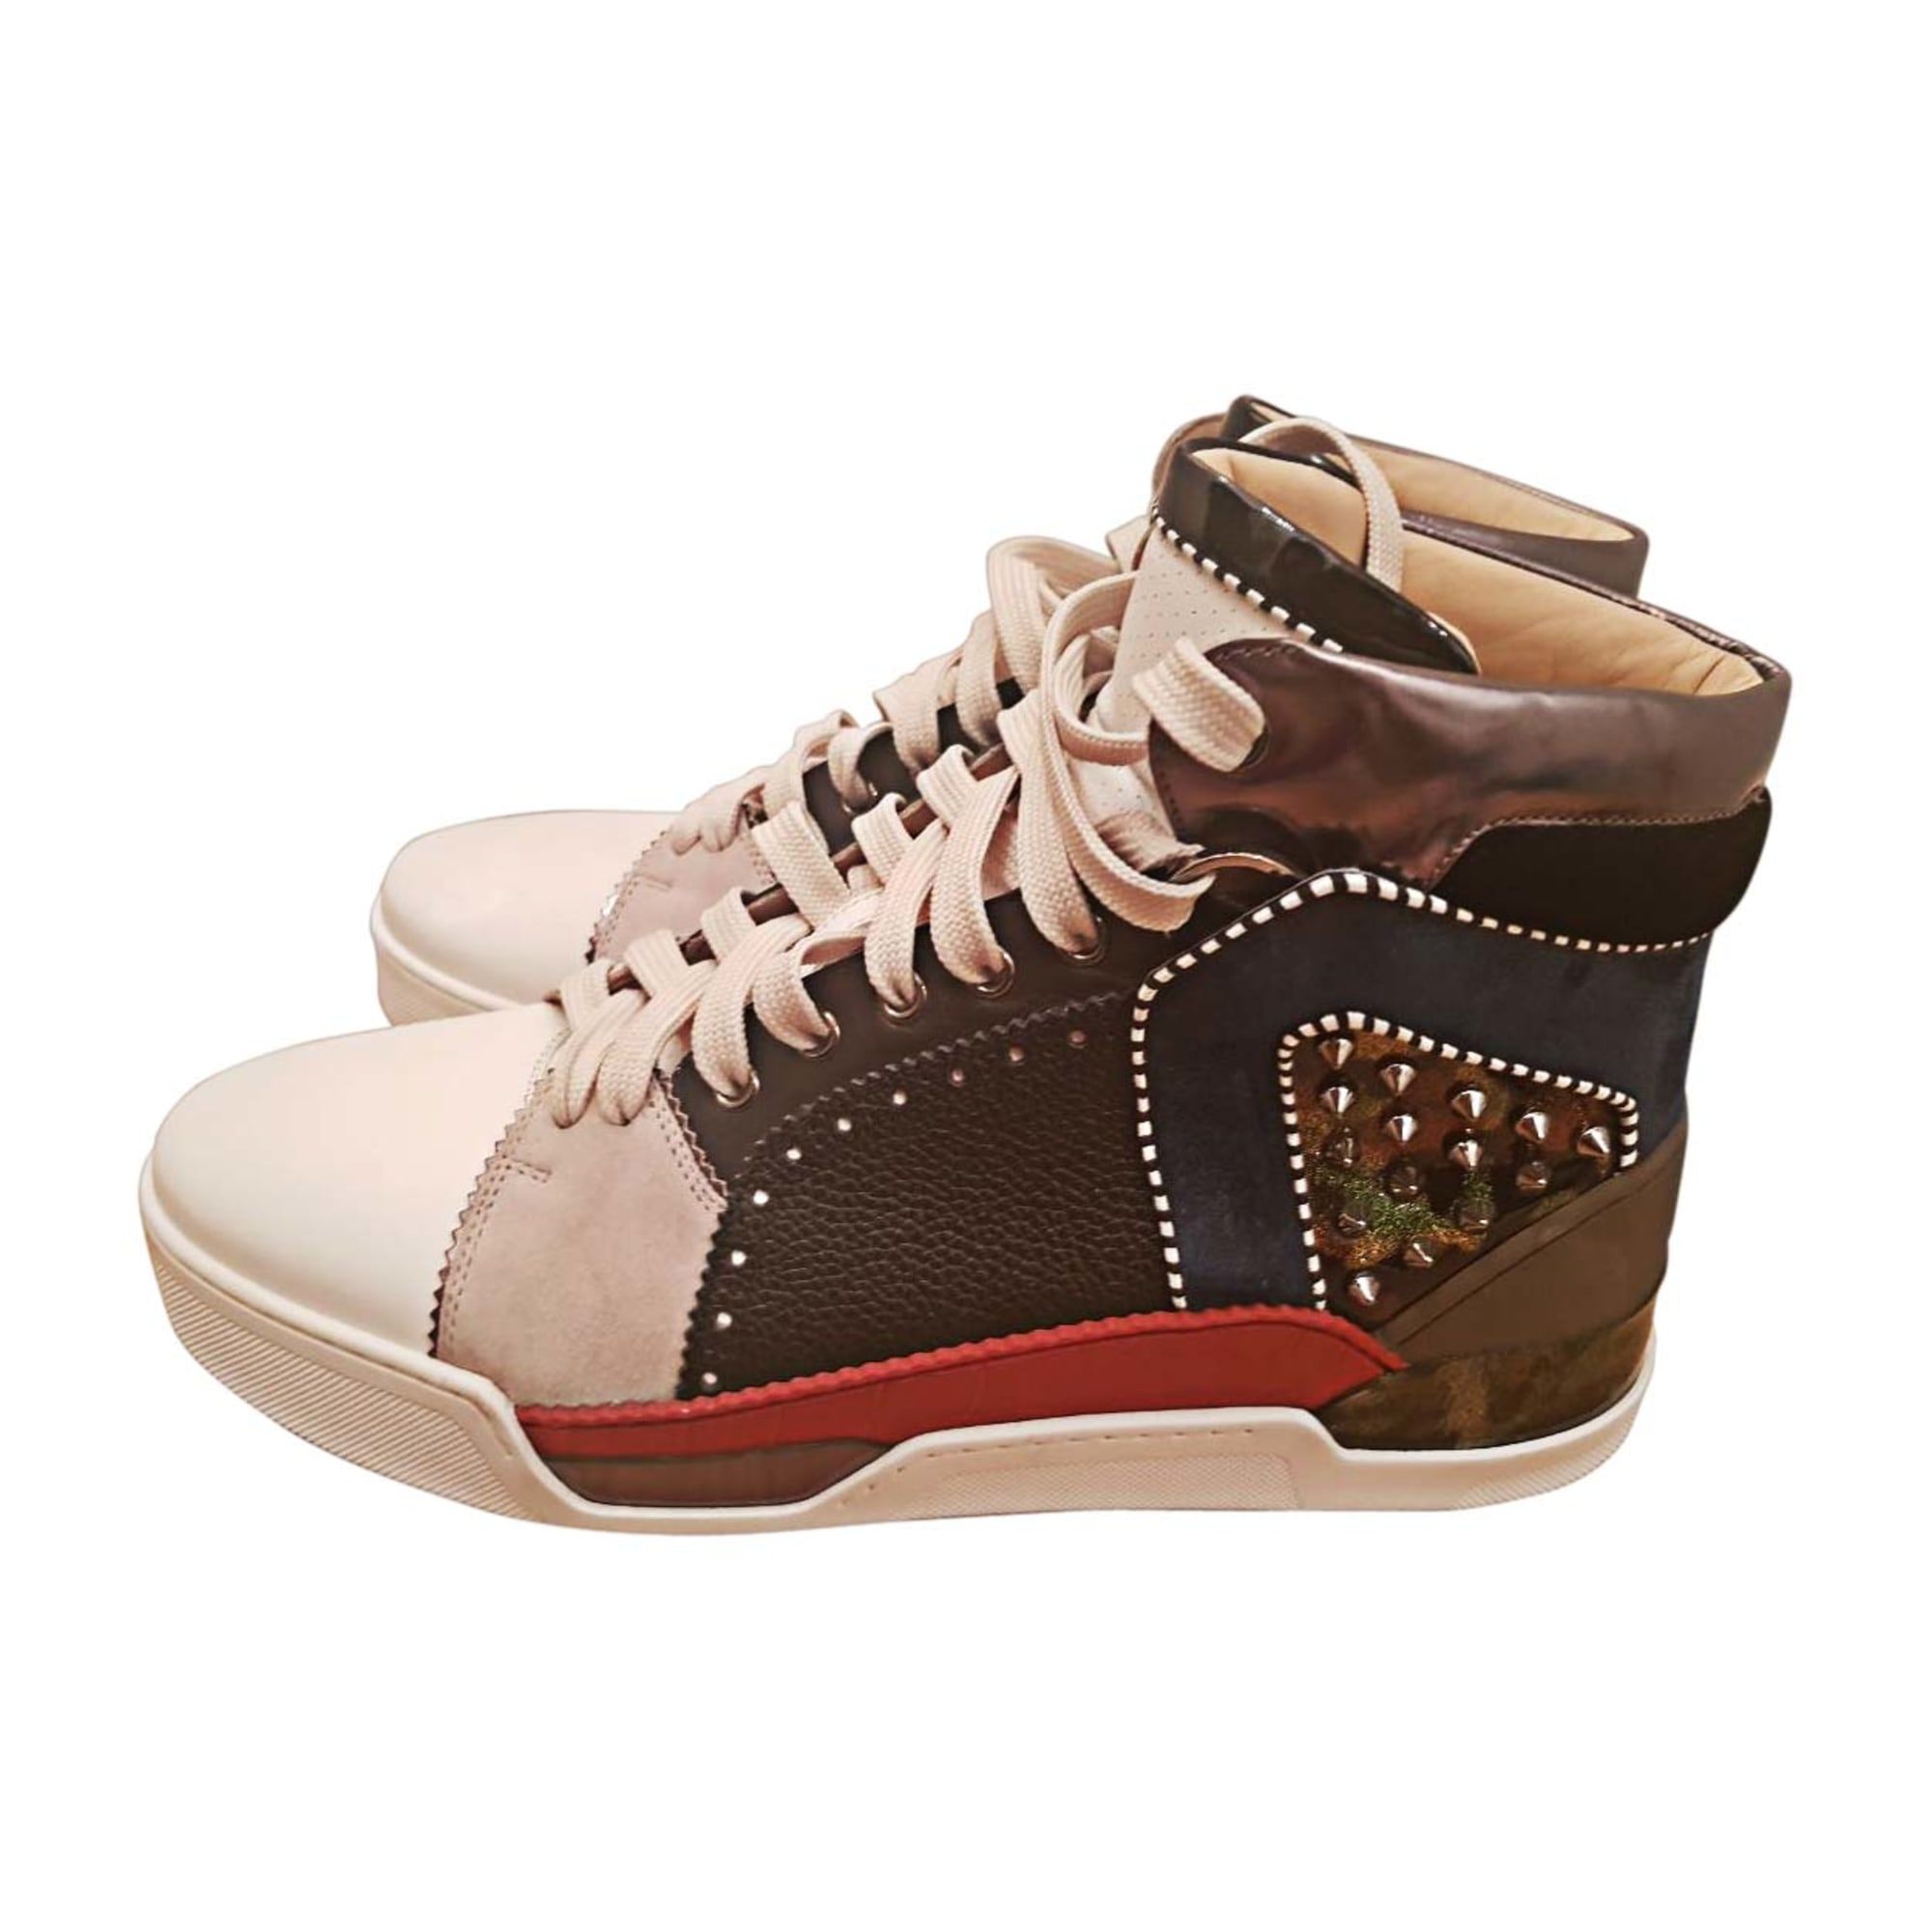 Baskets CHRISTIAN LOUBOUTIN multicolor